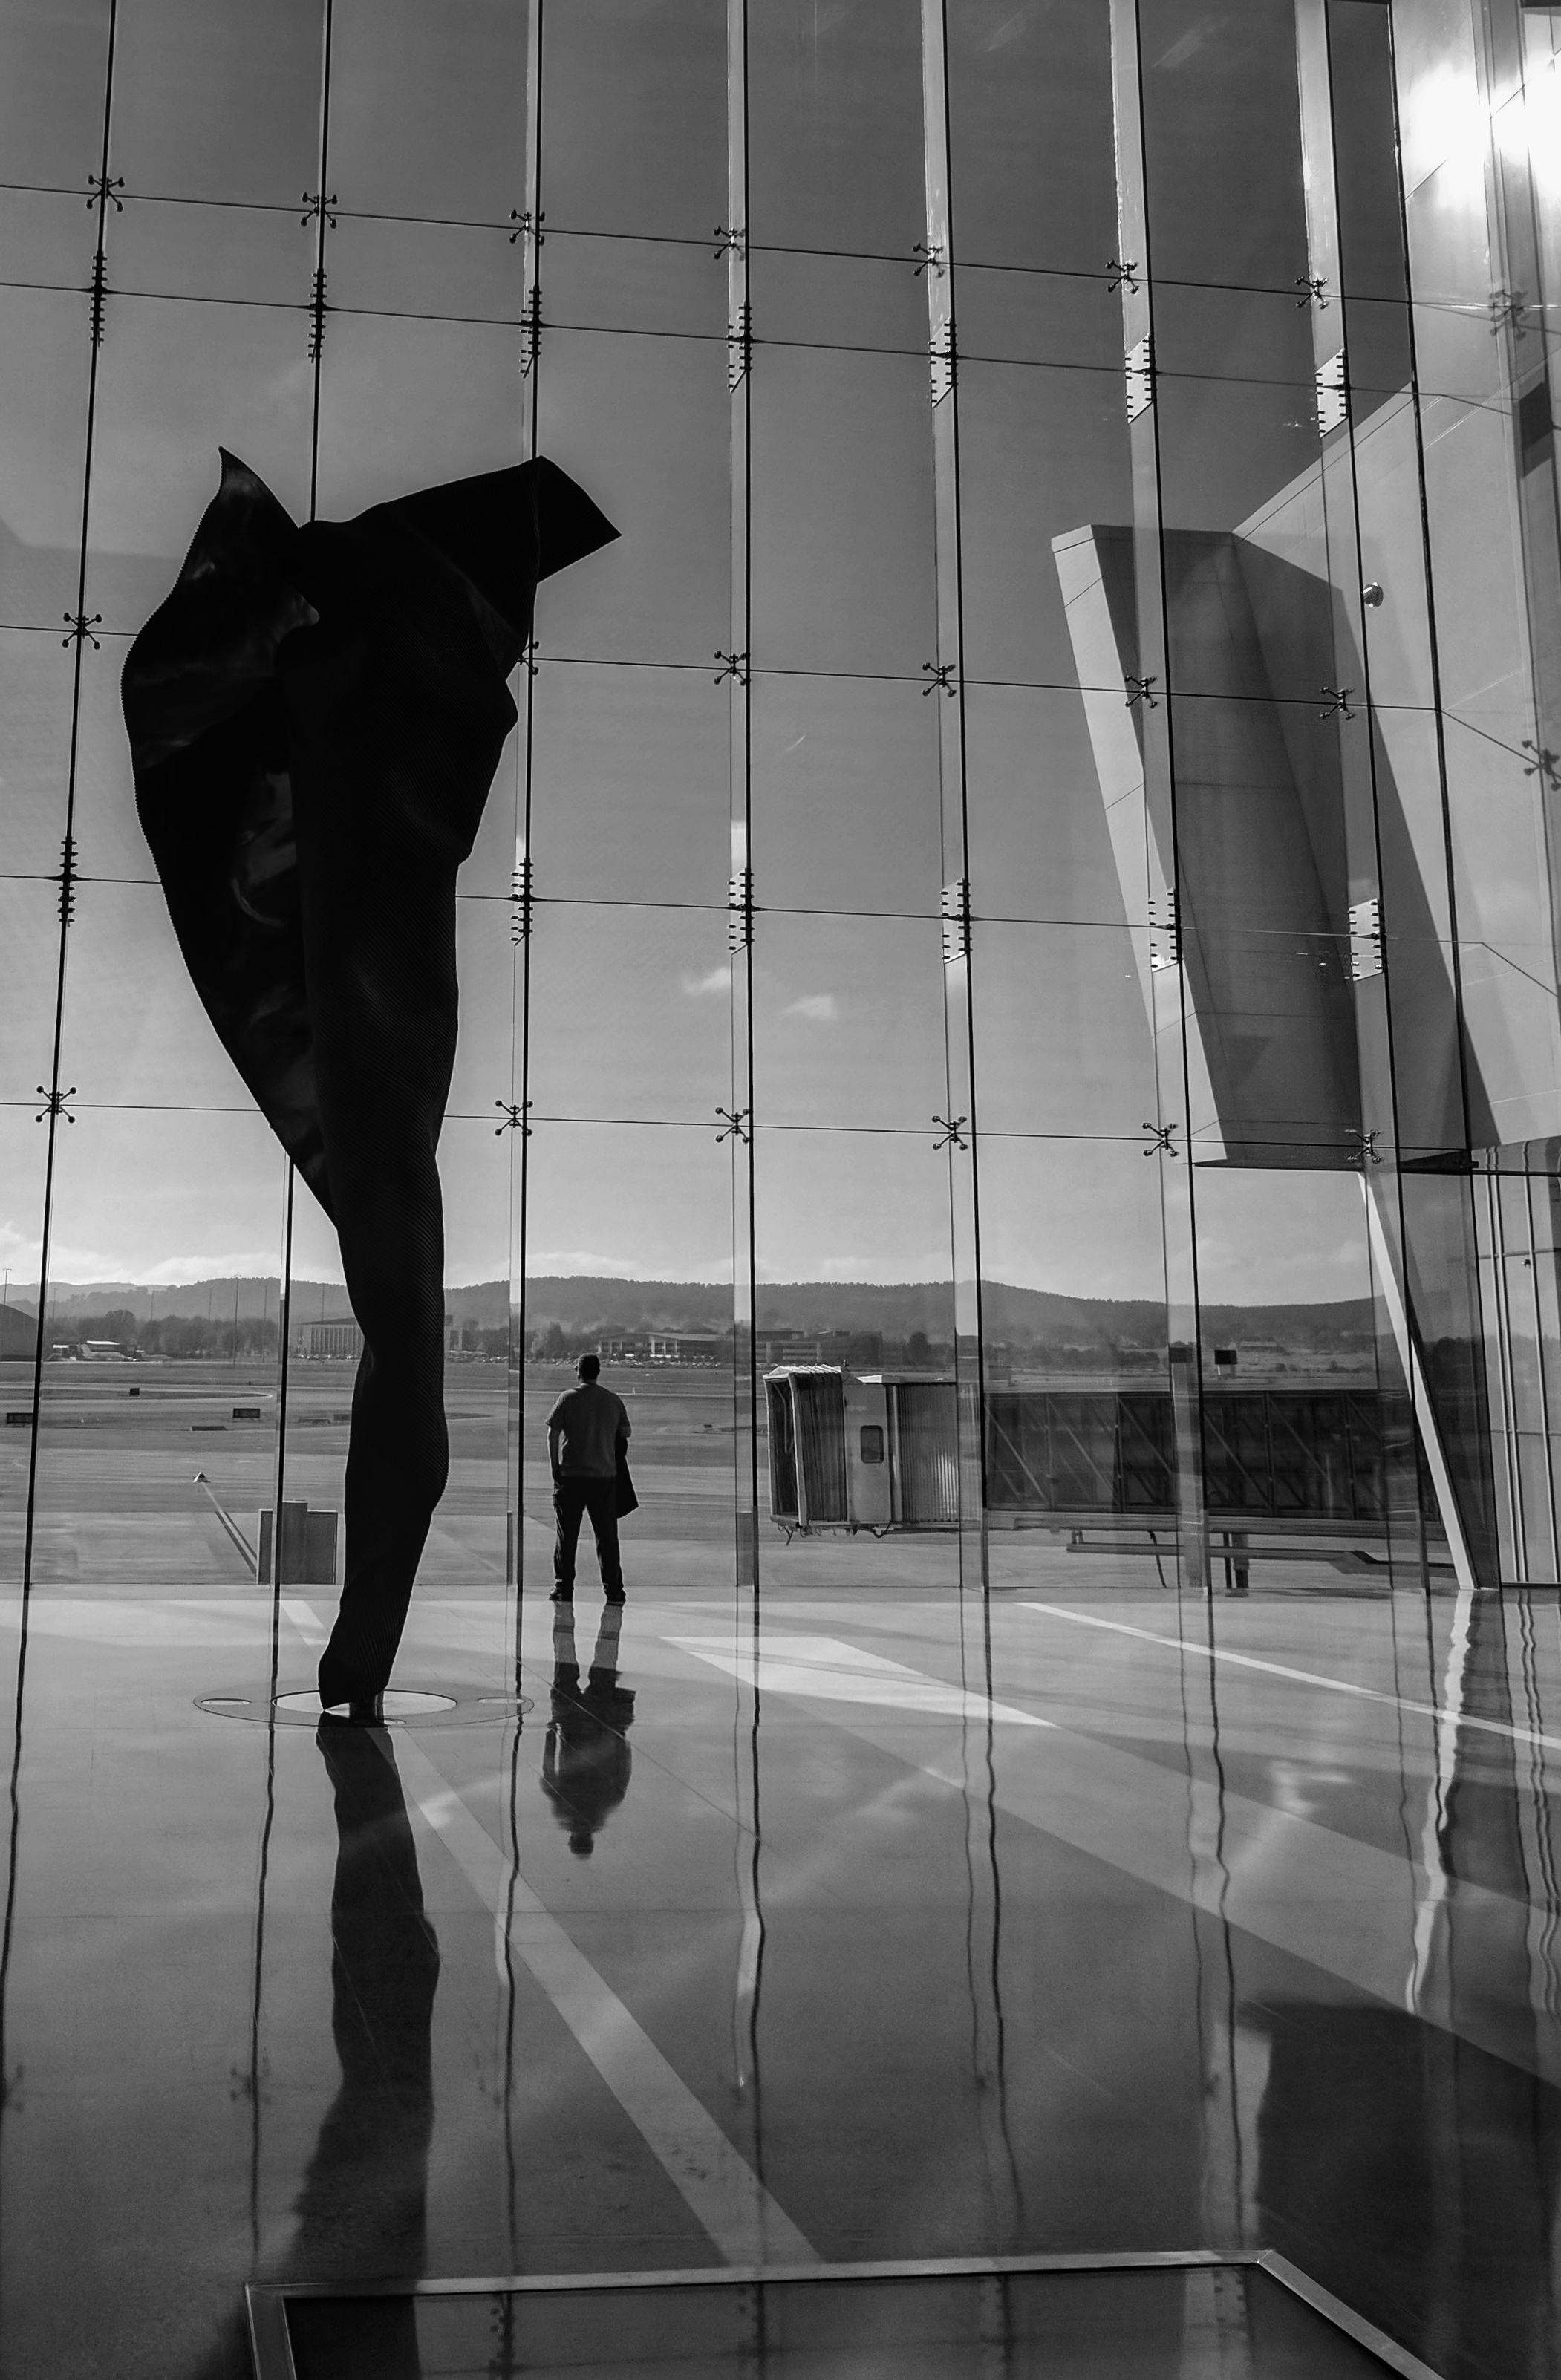 Black and white view of sculpture and person against window wall at Camberra sirport